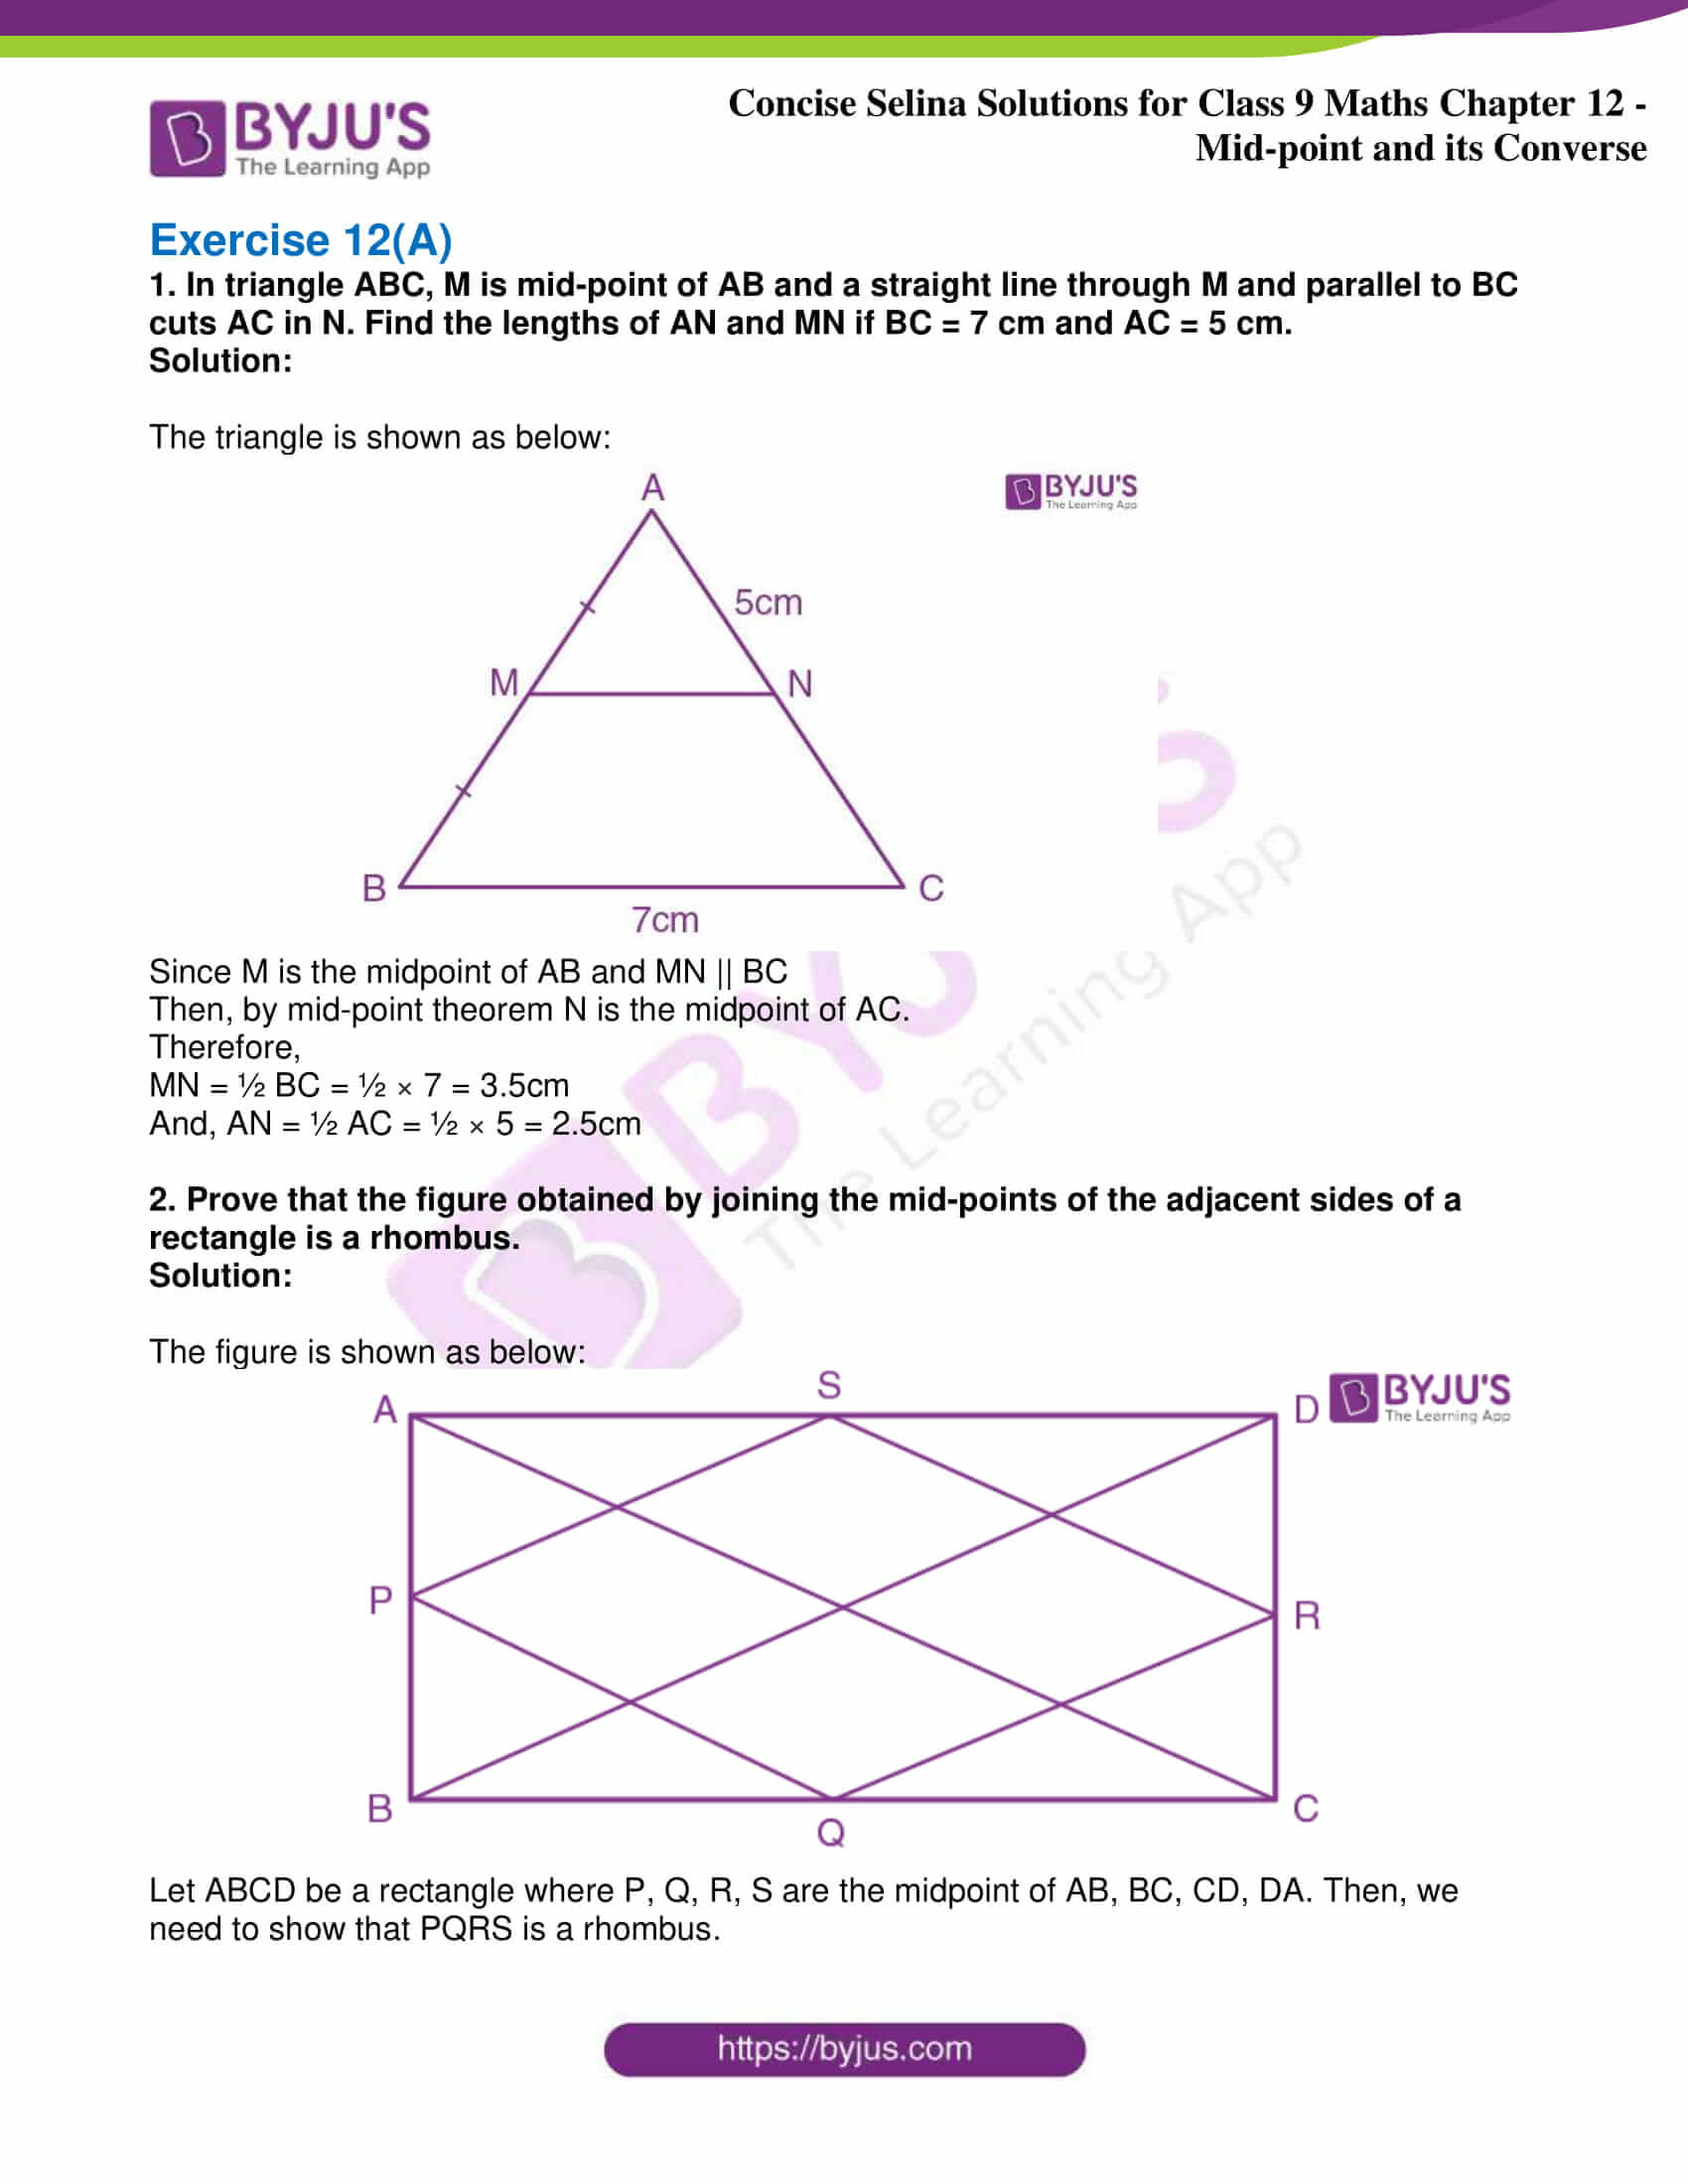 icse class 9 jun8 maths selina solutions chapter 12 midpoint and its converse 01